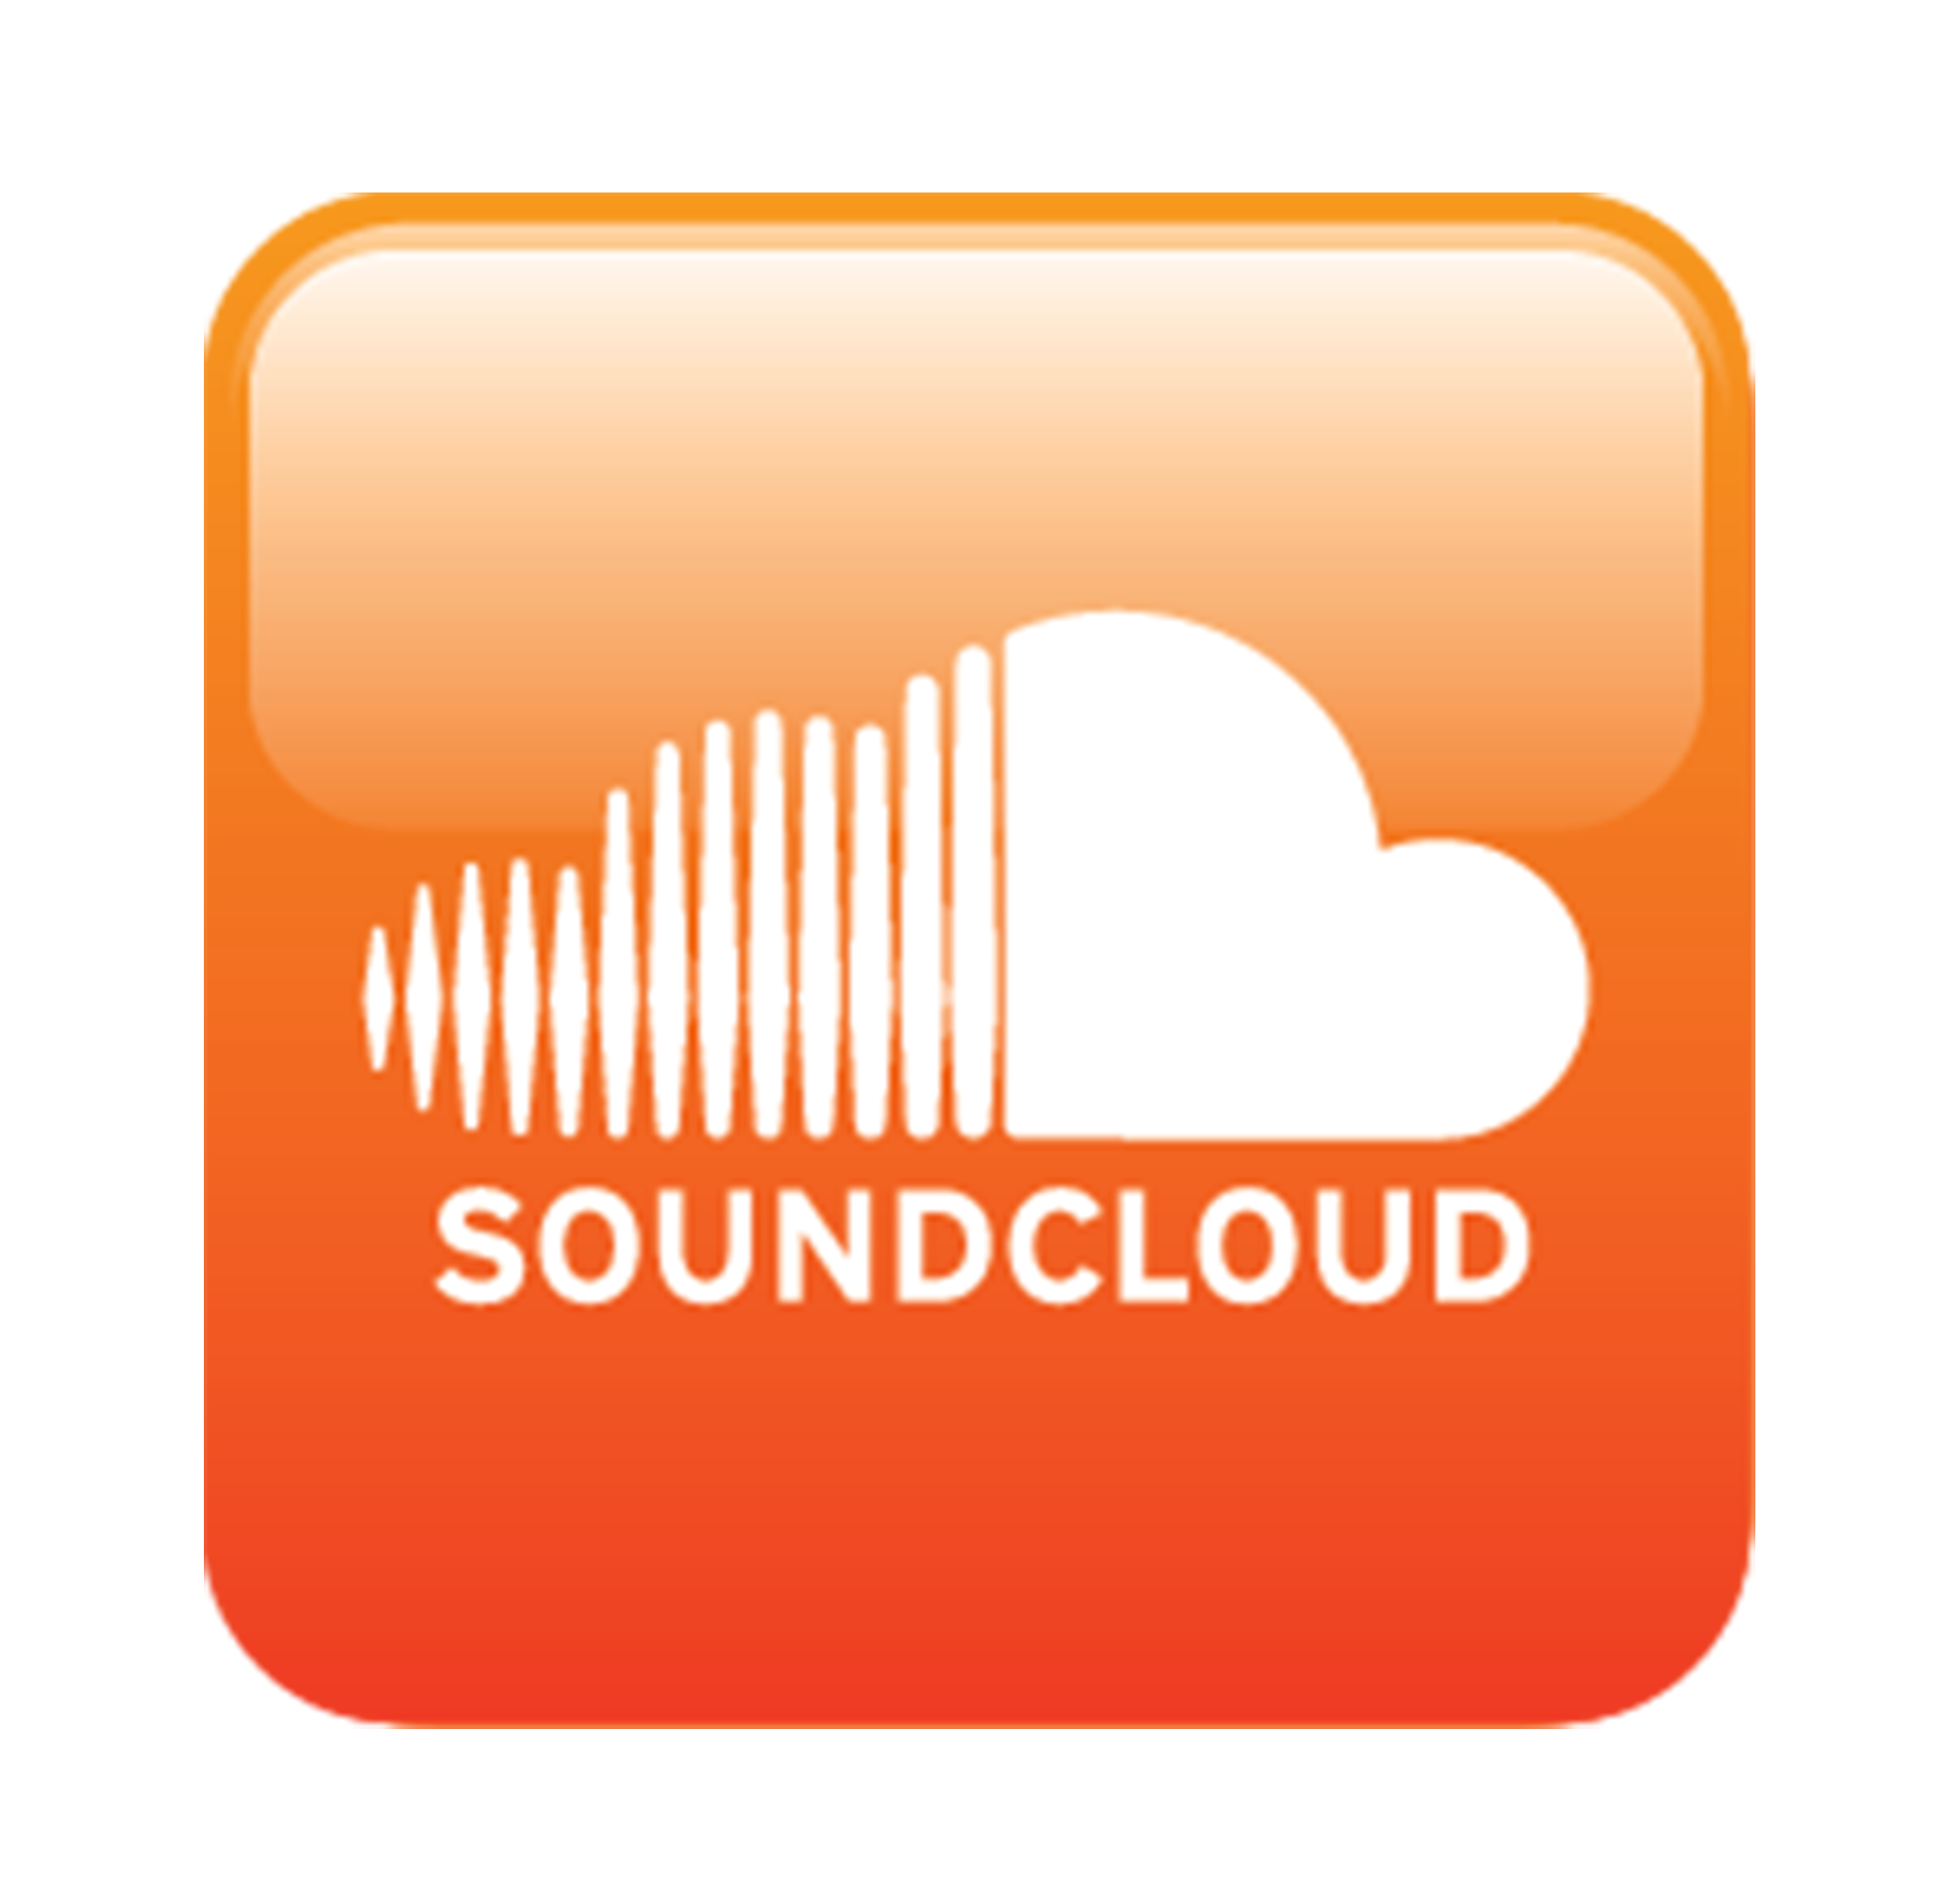 51,000 soundcloud plays 51 soundcloud likes 51 repost 10 comments